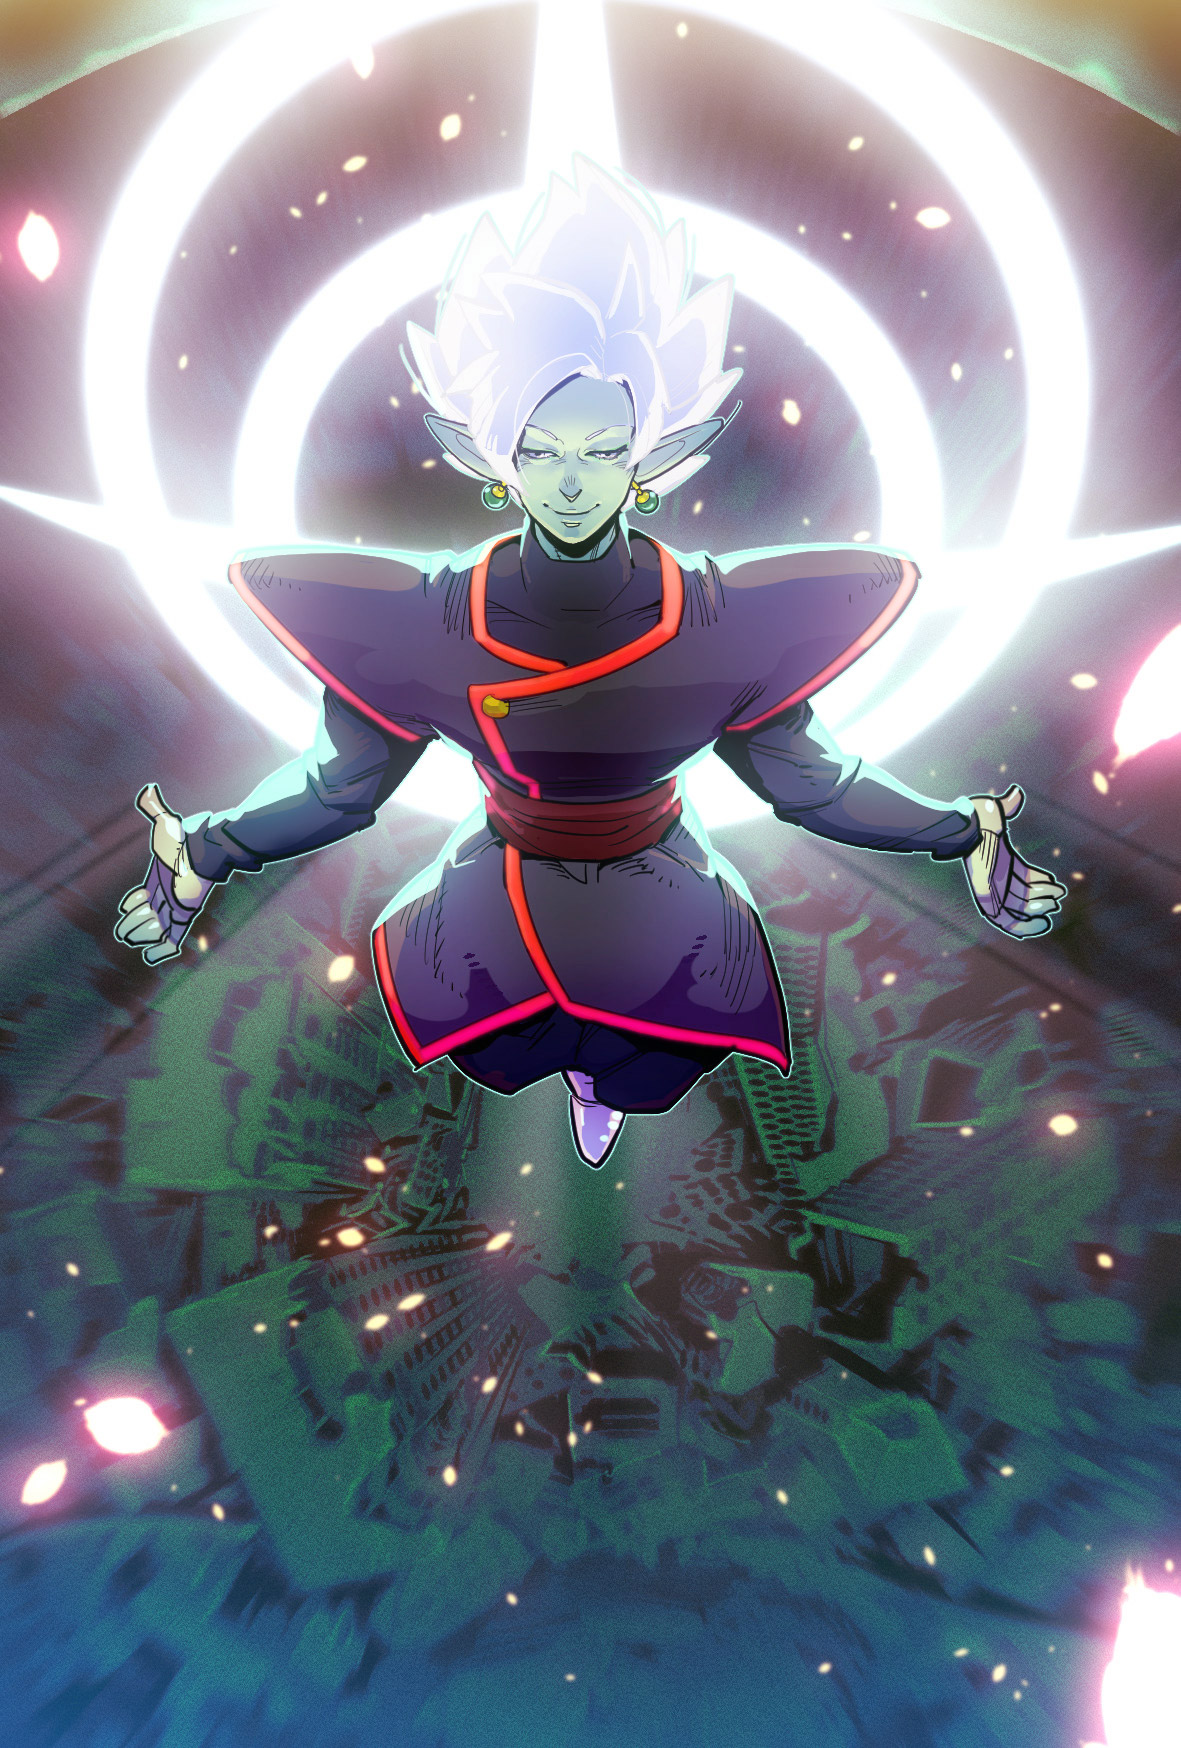 Black-Goku-and-Zamasu-fusion-wallpaper-wp5005296